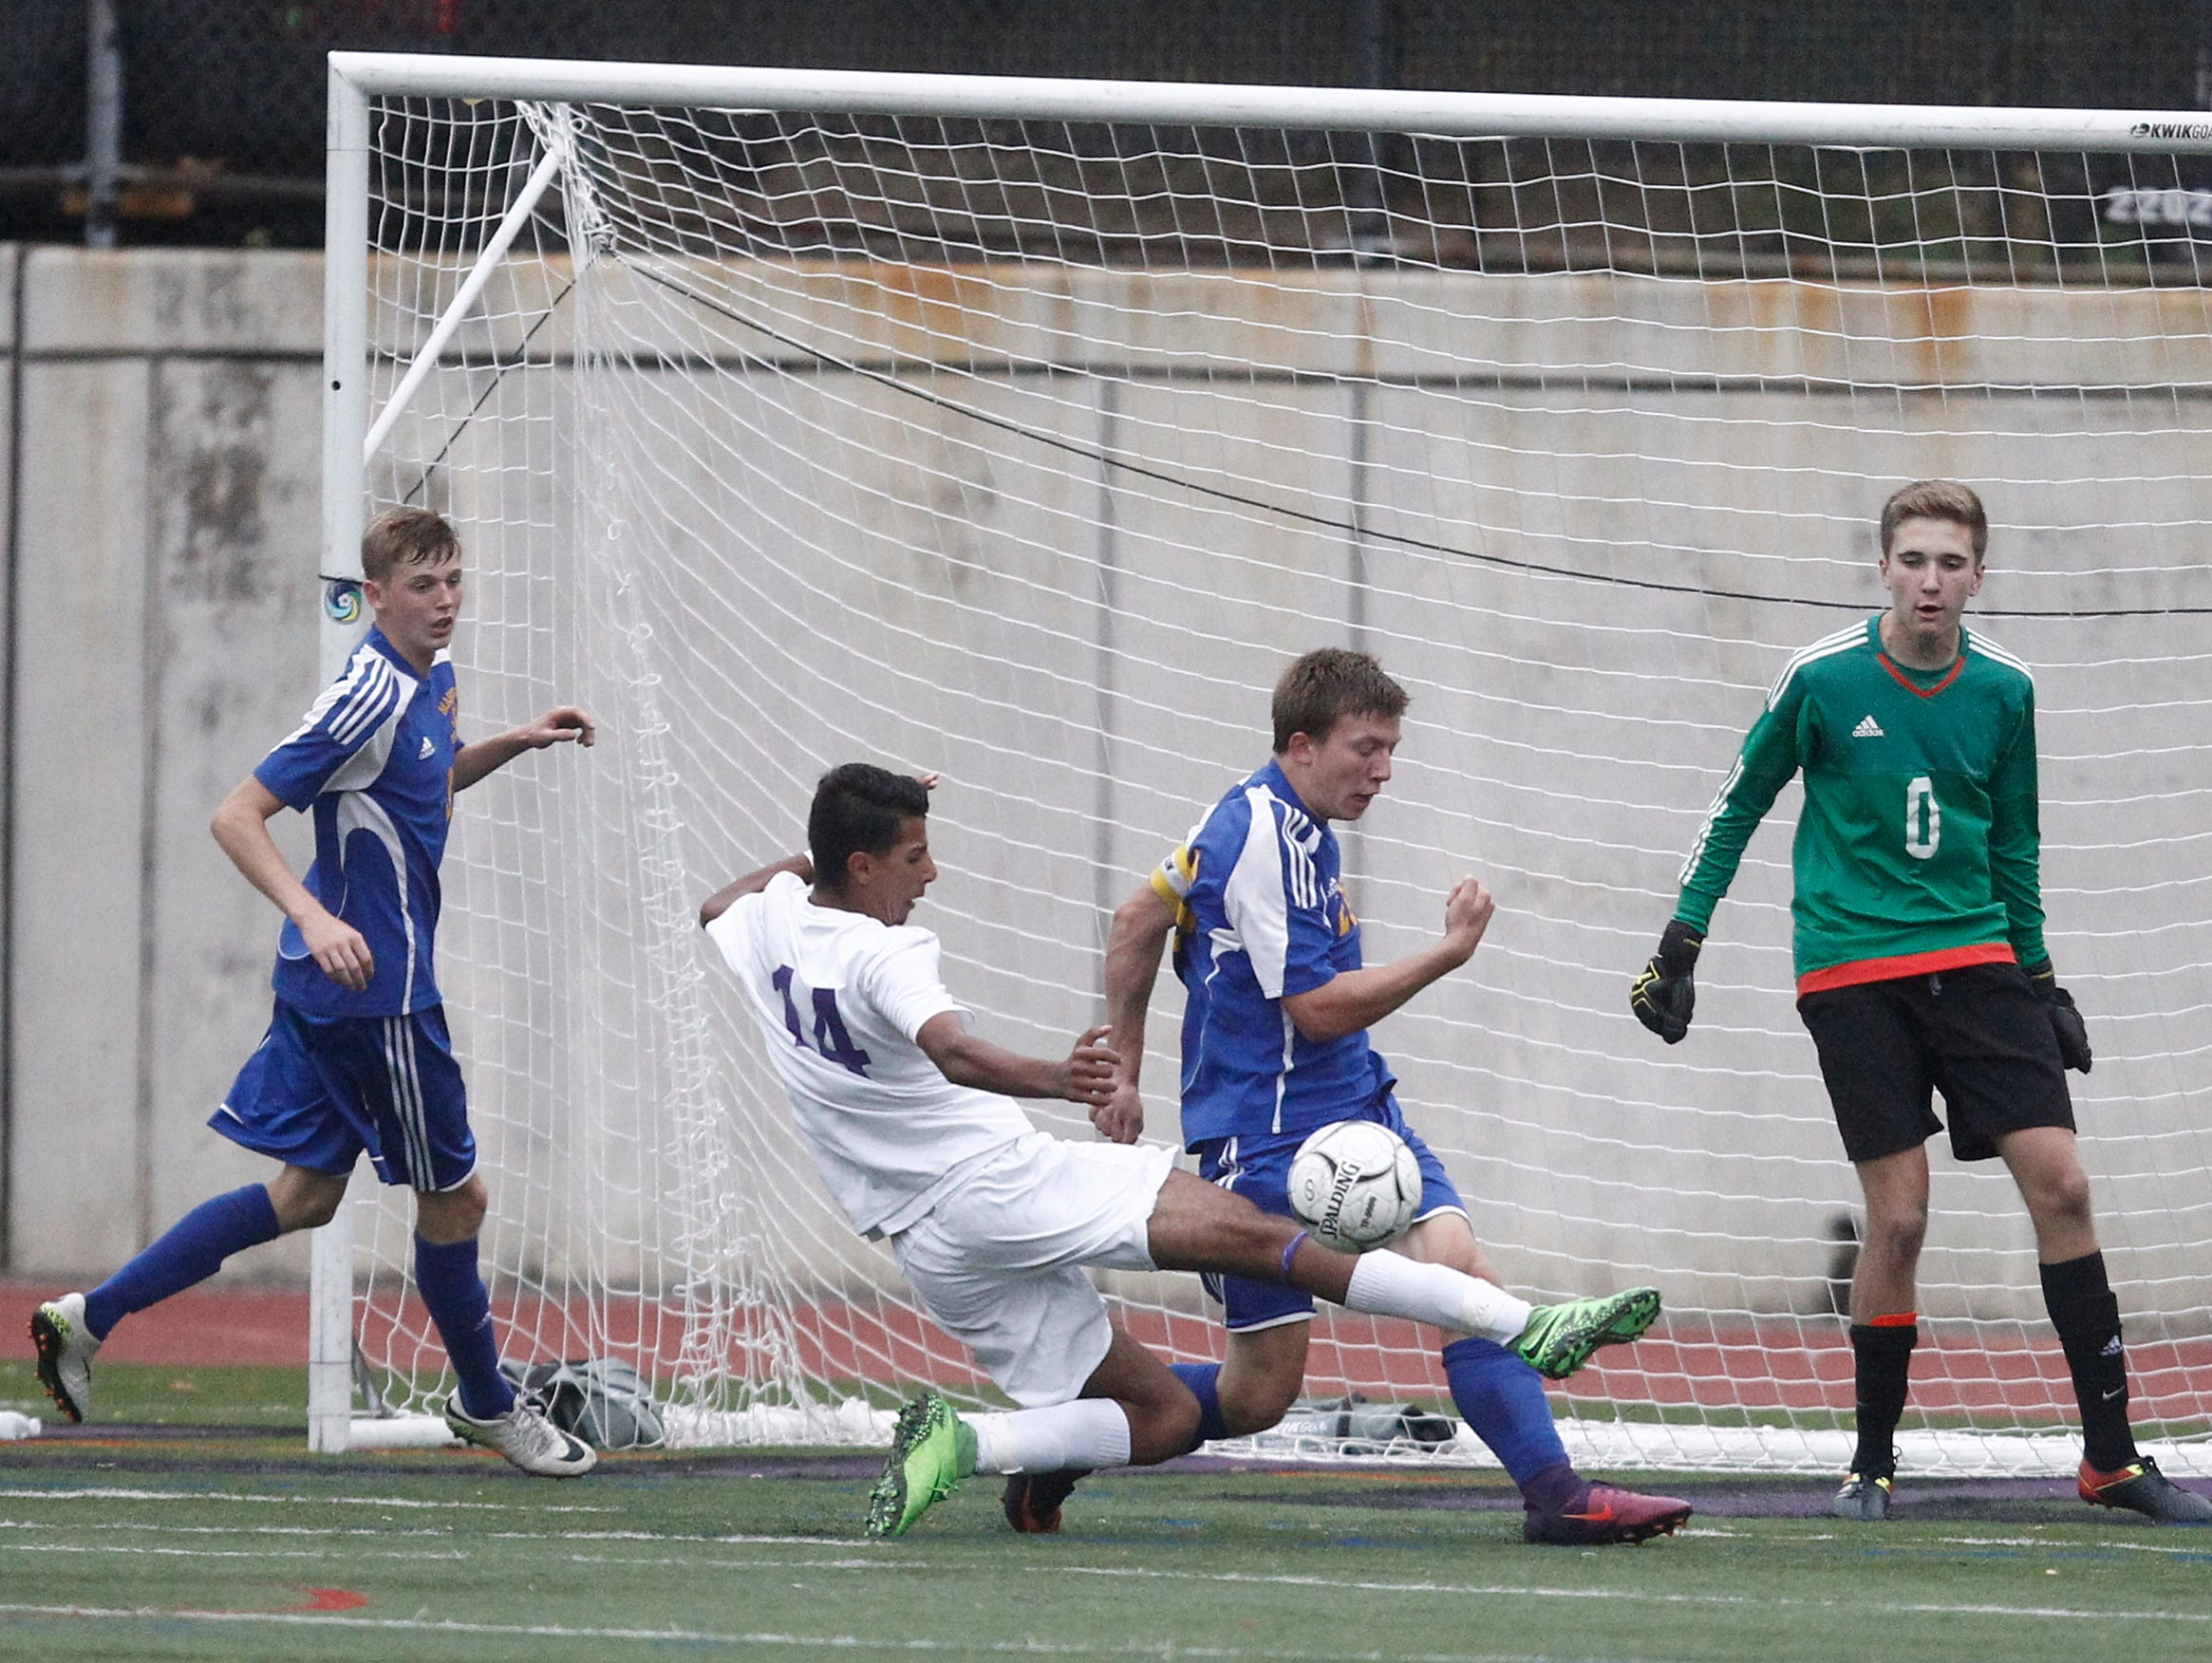 New Rochelle's Harwan Alzuabidi (14) slides for a shot on goal during their 2-0 win over Mahopac in the first round of the boys soccer Class AA playoffs at New Rochelle High School in New Rochelle on Thursday, October 20, 2016.